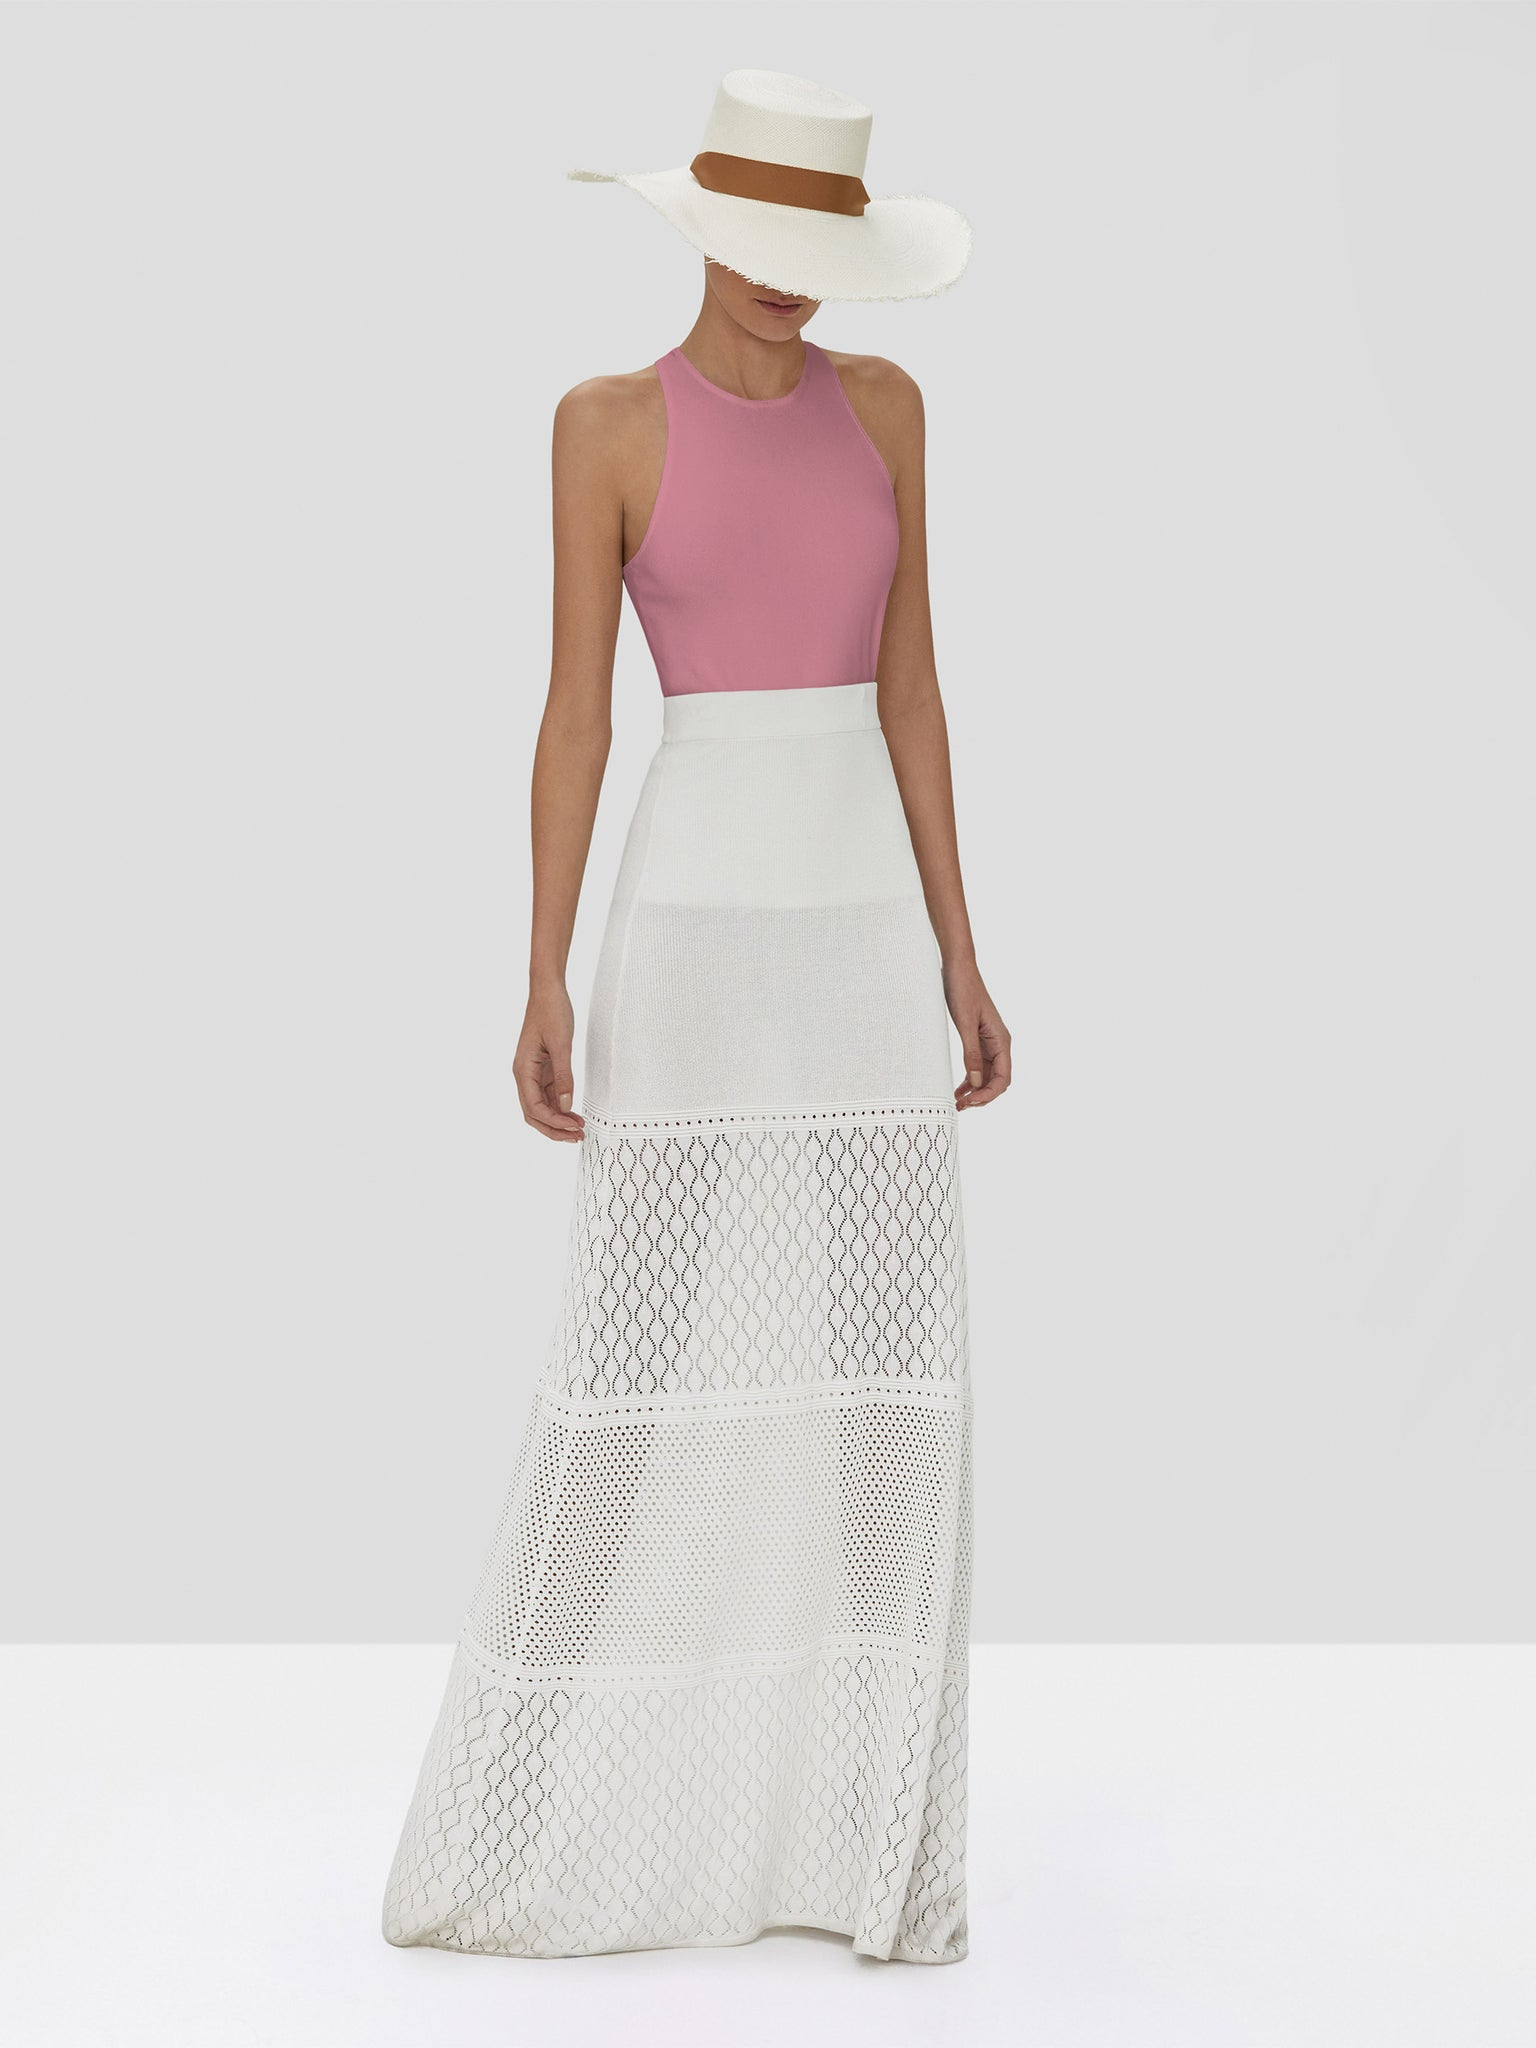 Alexis Zeni Top in Dusty Rose and Ecco Skirt in White from the Spring Summer 2020 Collection